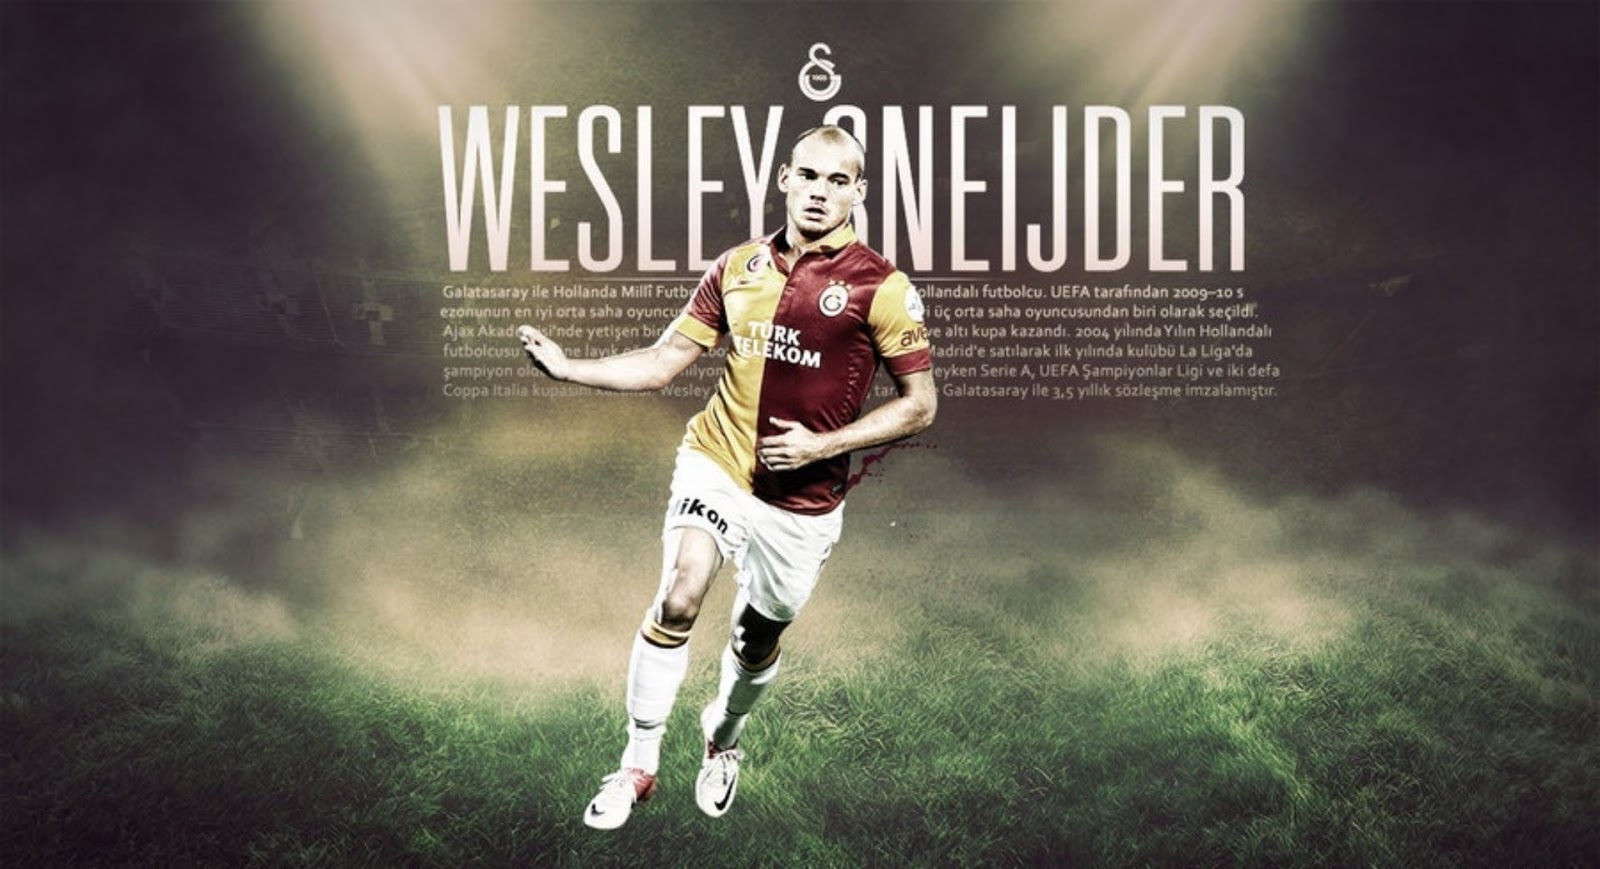 Iphone 4 Heart Wallpaper Wesley Sneijder Galatasaray Hd Resimleri Hd Wallpapers